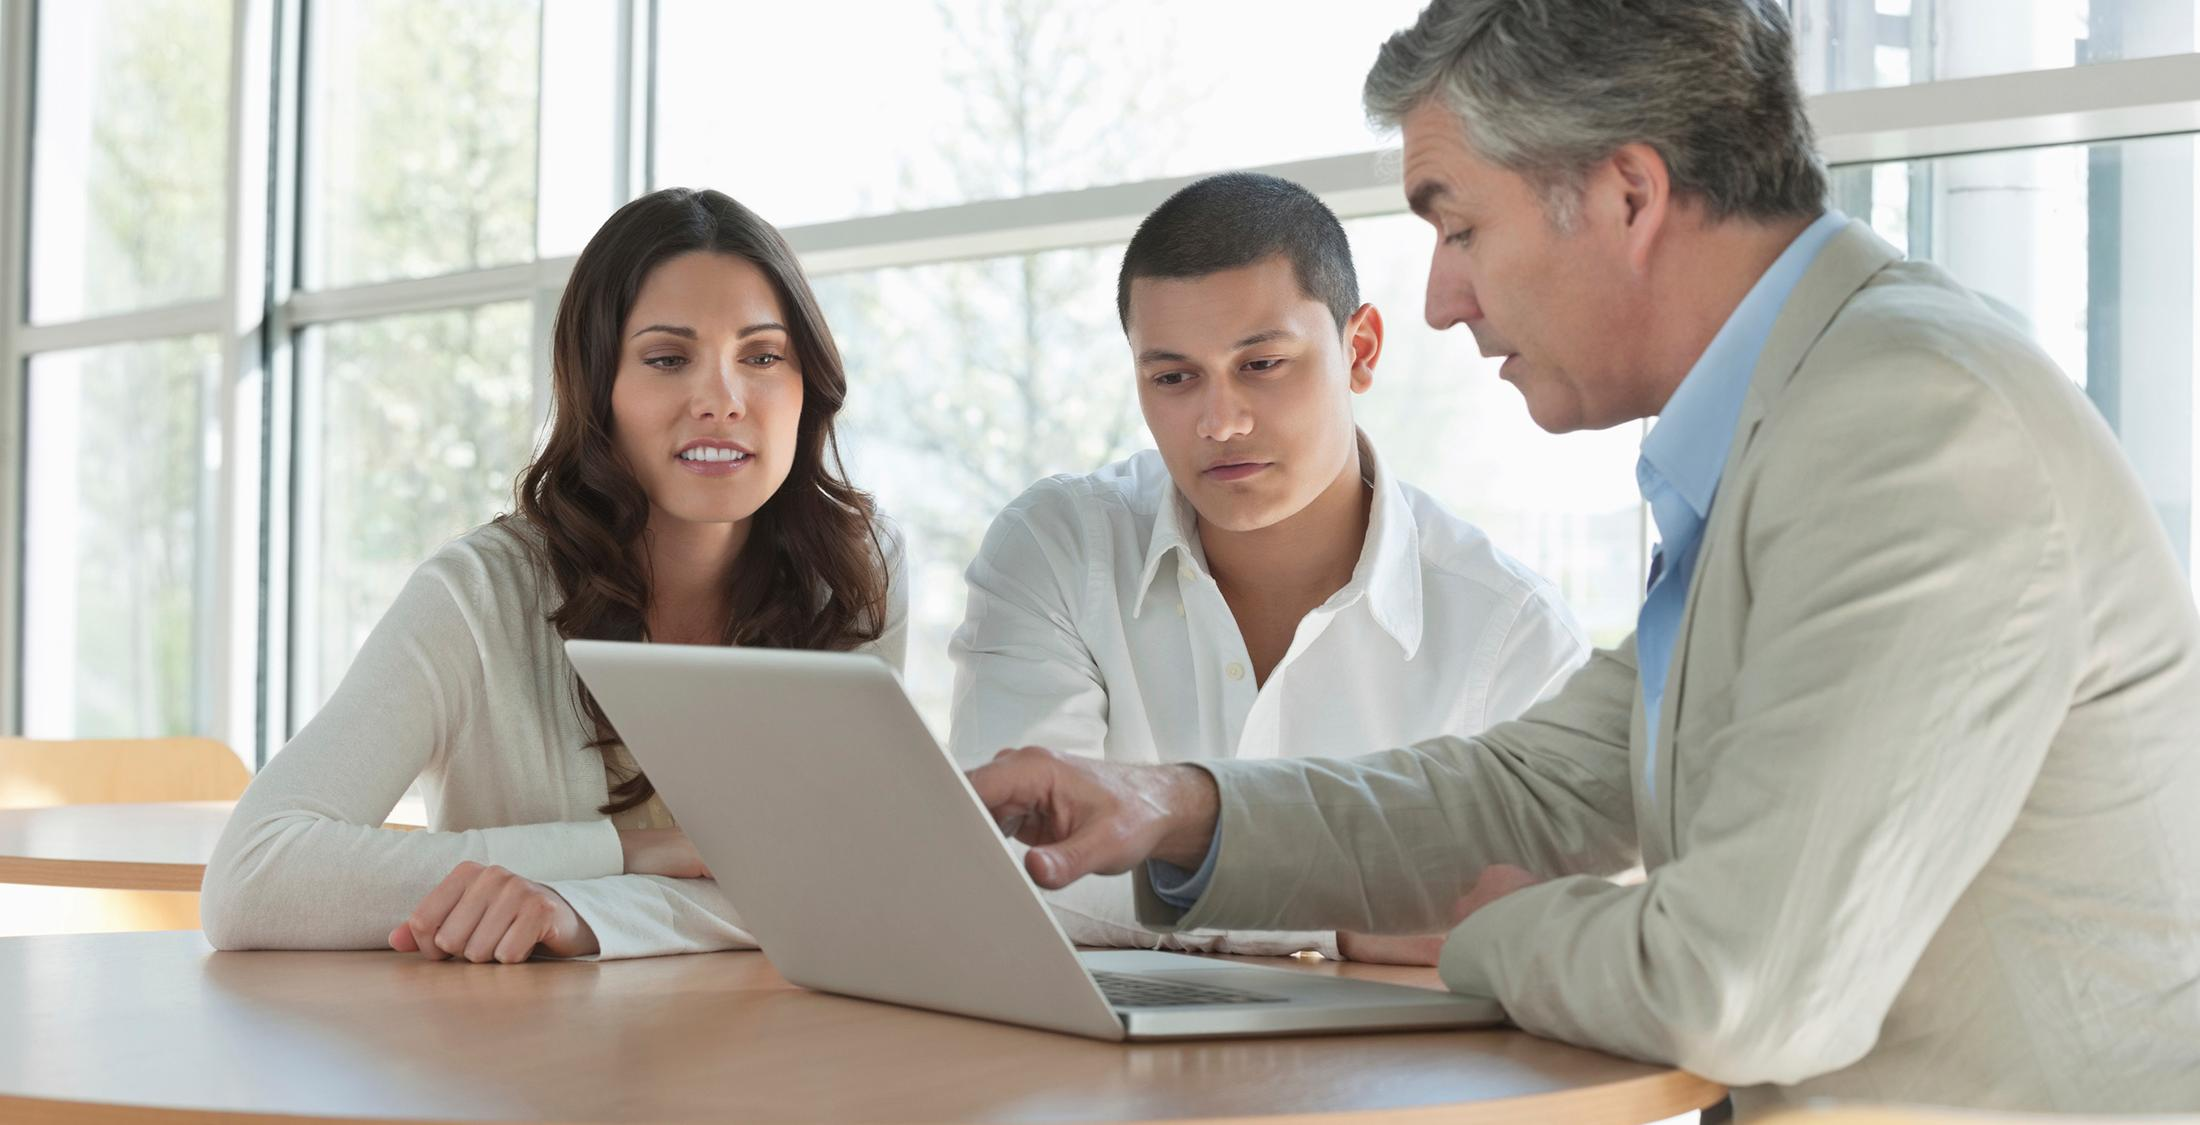 Mature financial advisor explaining an investment scheme on laptop to young couple